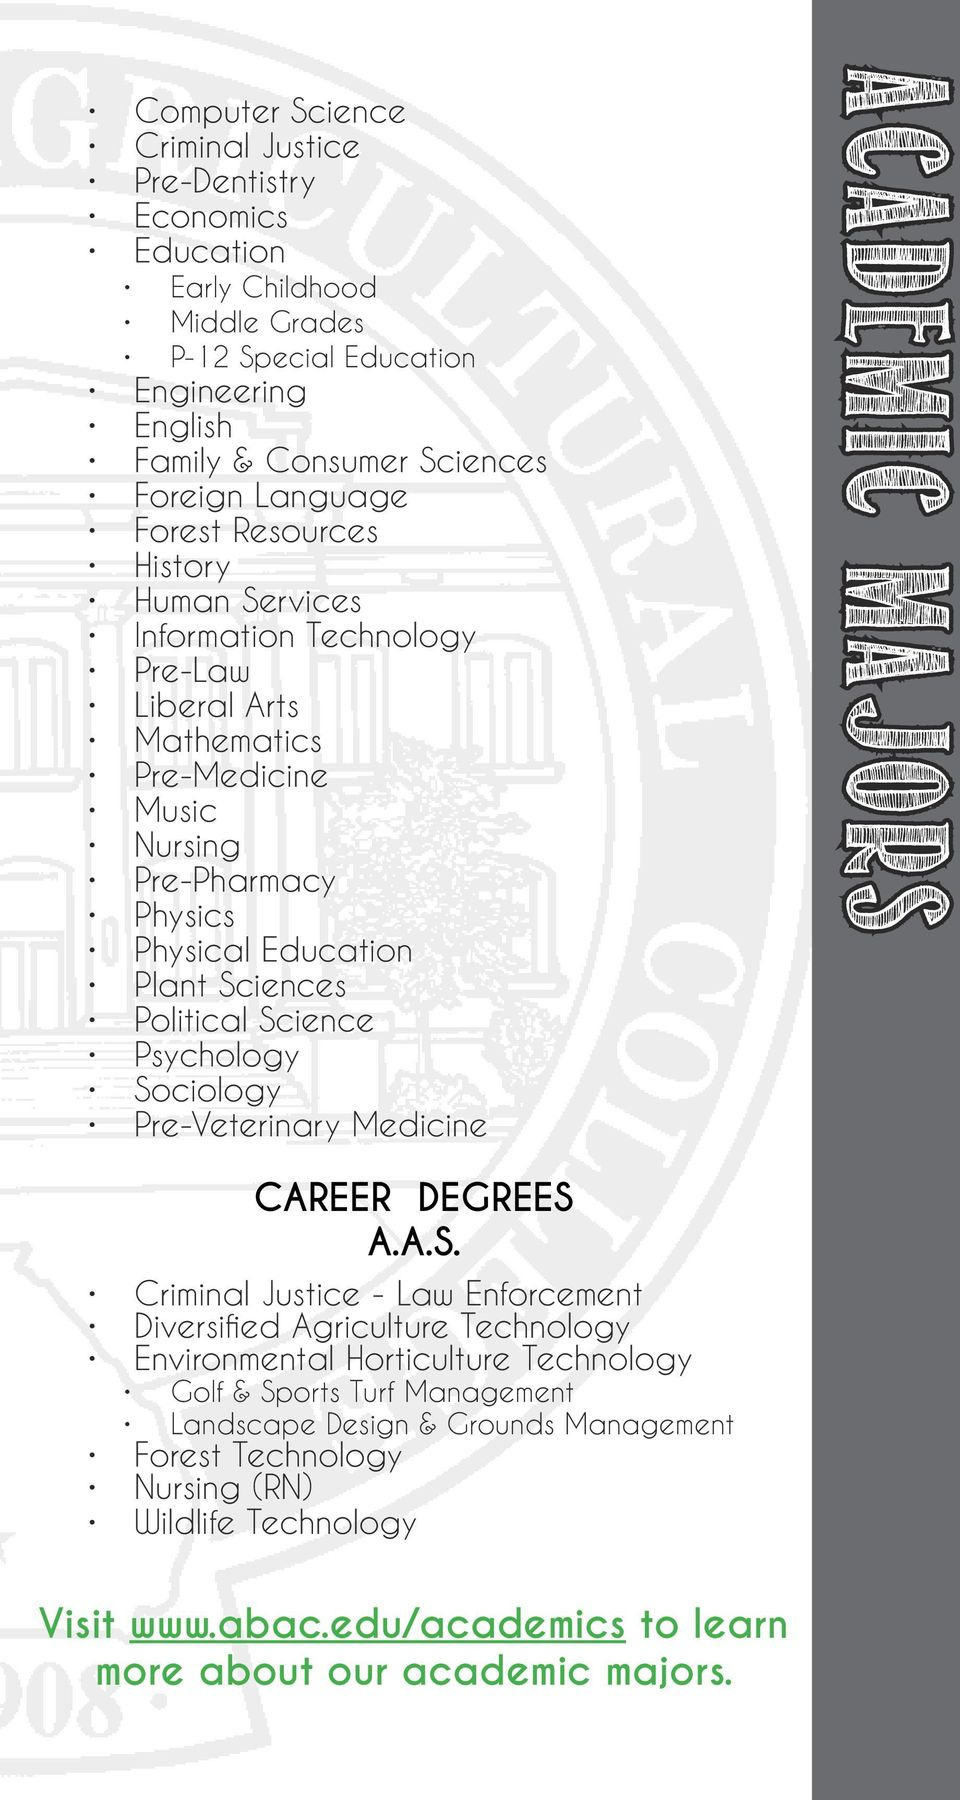 Science Psychology Sociology Pre-Veterinary Medicine Academic Majors CAREER DEGREES A.A.S. Criminal Justice - Law Enforcement Diversified Agriculture Technology Environmental Horticulture